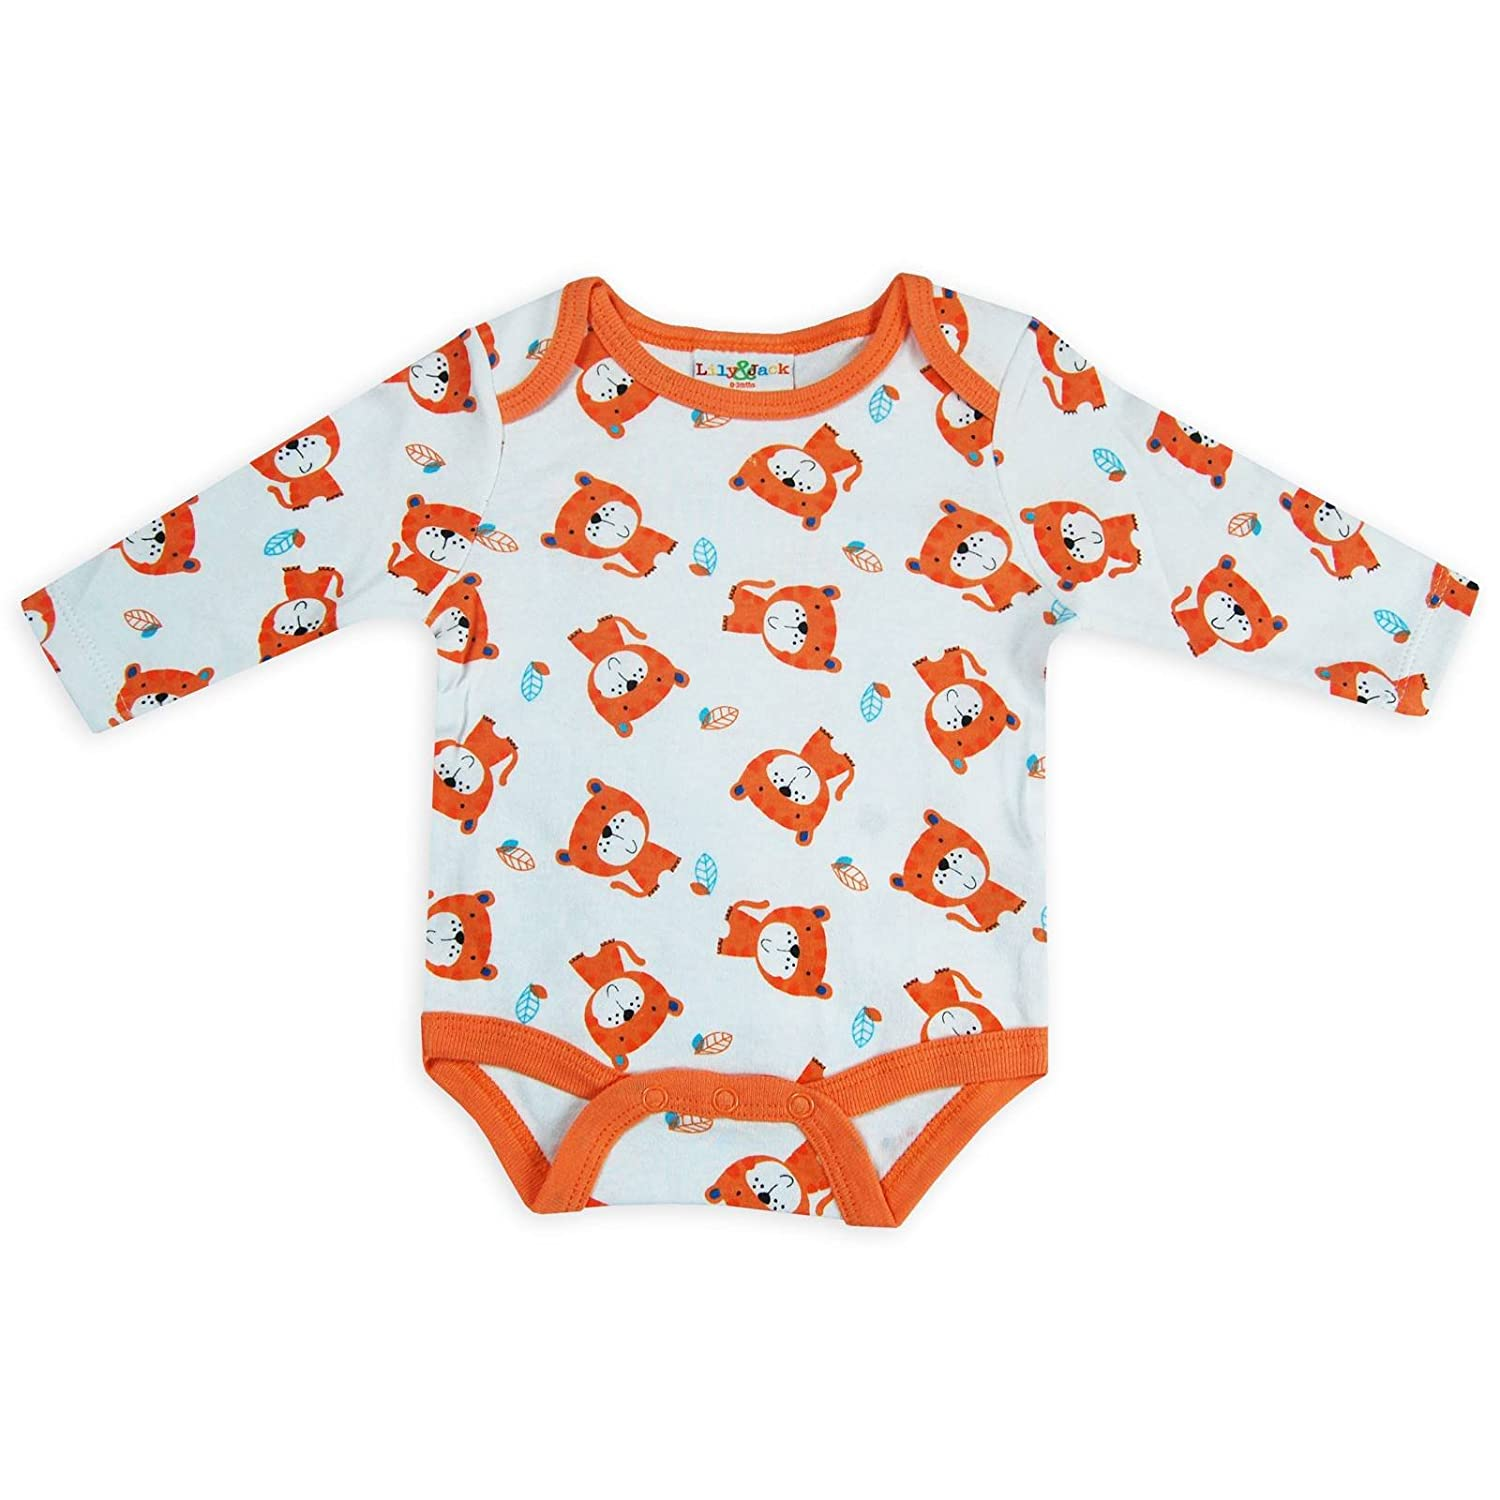 2ce36f03f79d Presents Gifts For Newborn Baby Boys Girls Toddler Unisex Cute ...